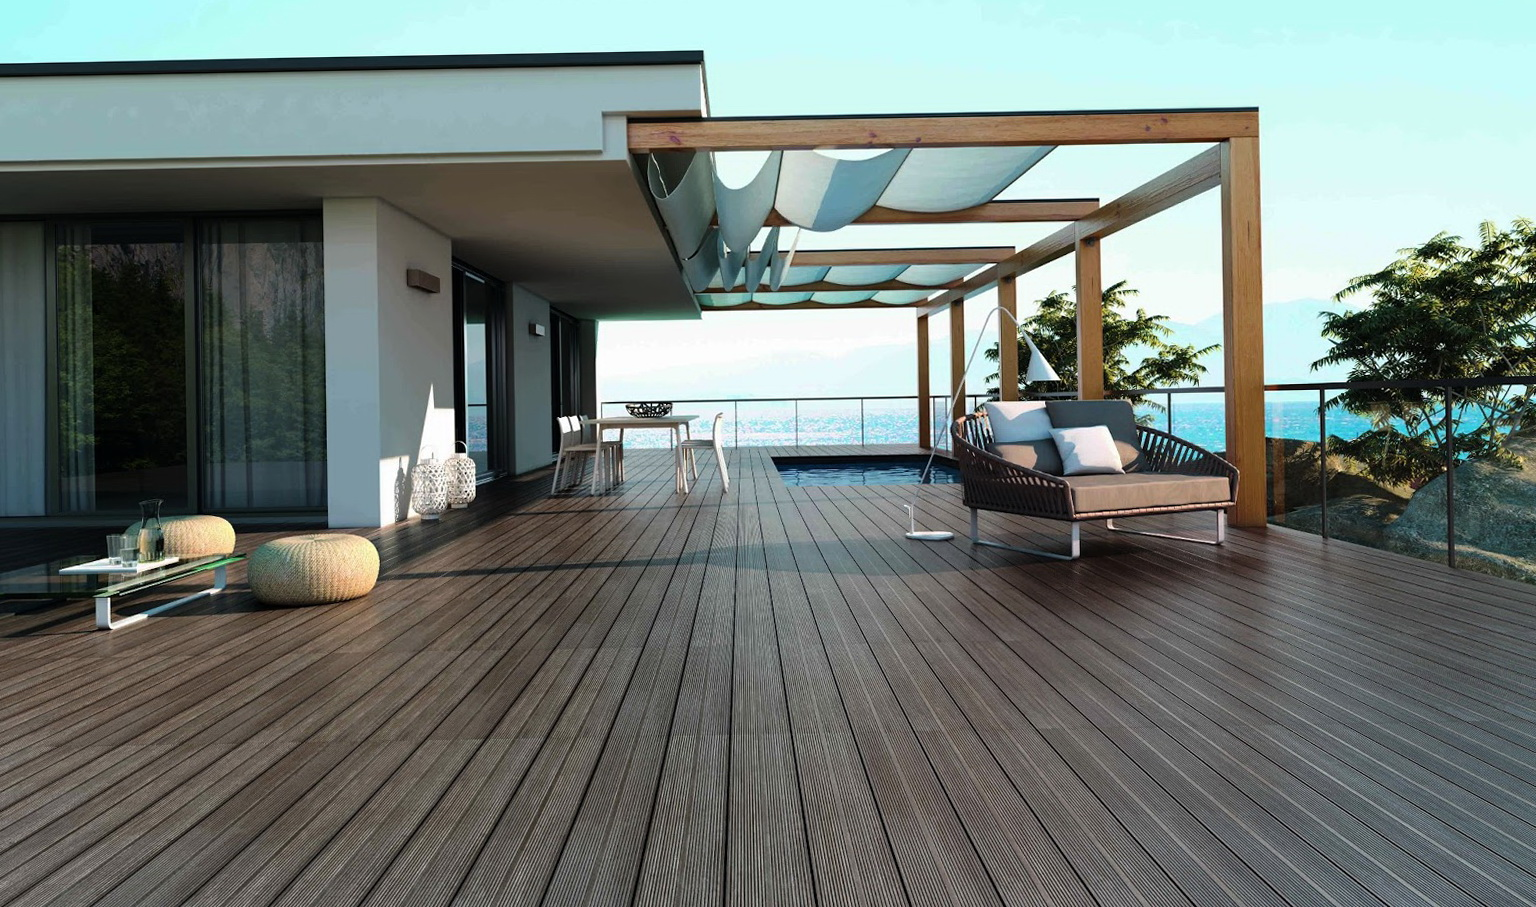 16 X 16 Wood Decking Tiles Home Design Ideas